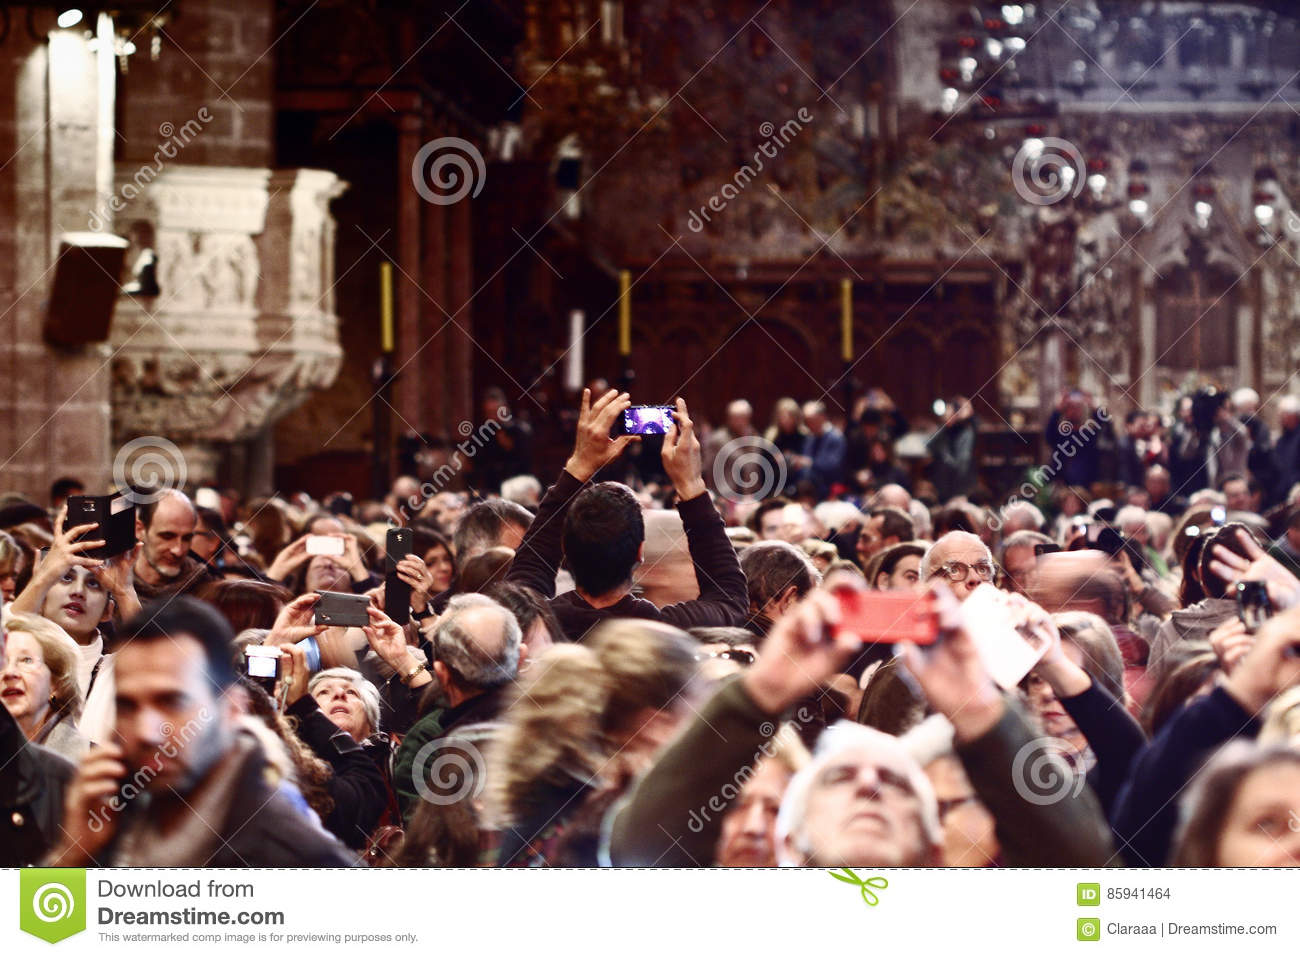 People taking pictures in the spectacle of cathedral of Palma de Majorca.